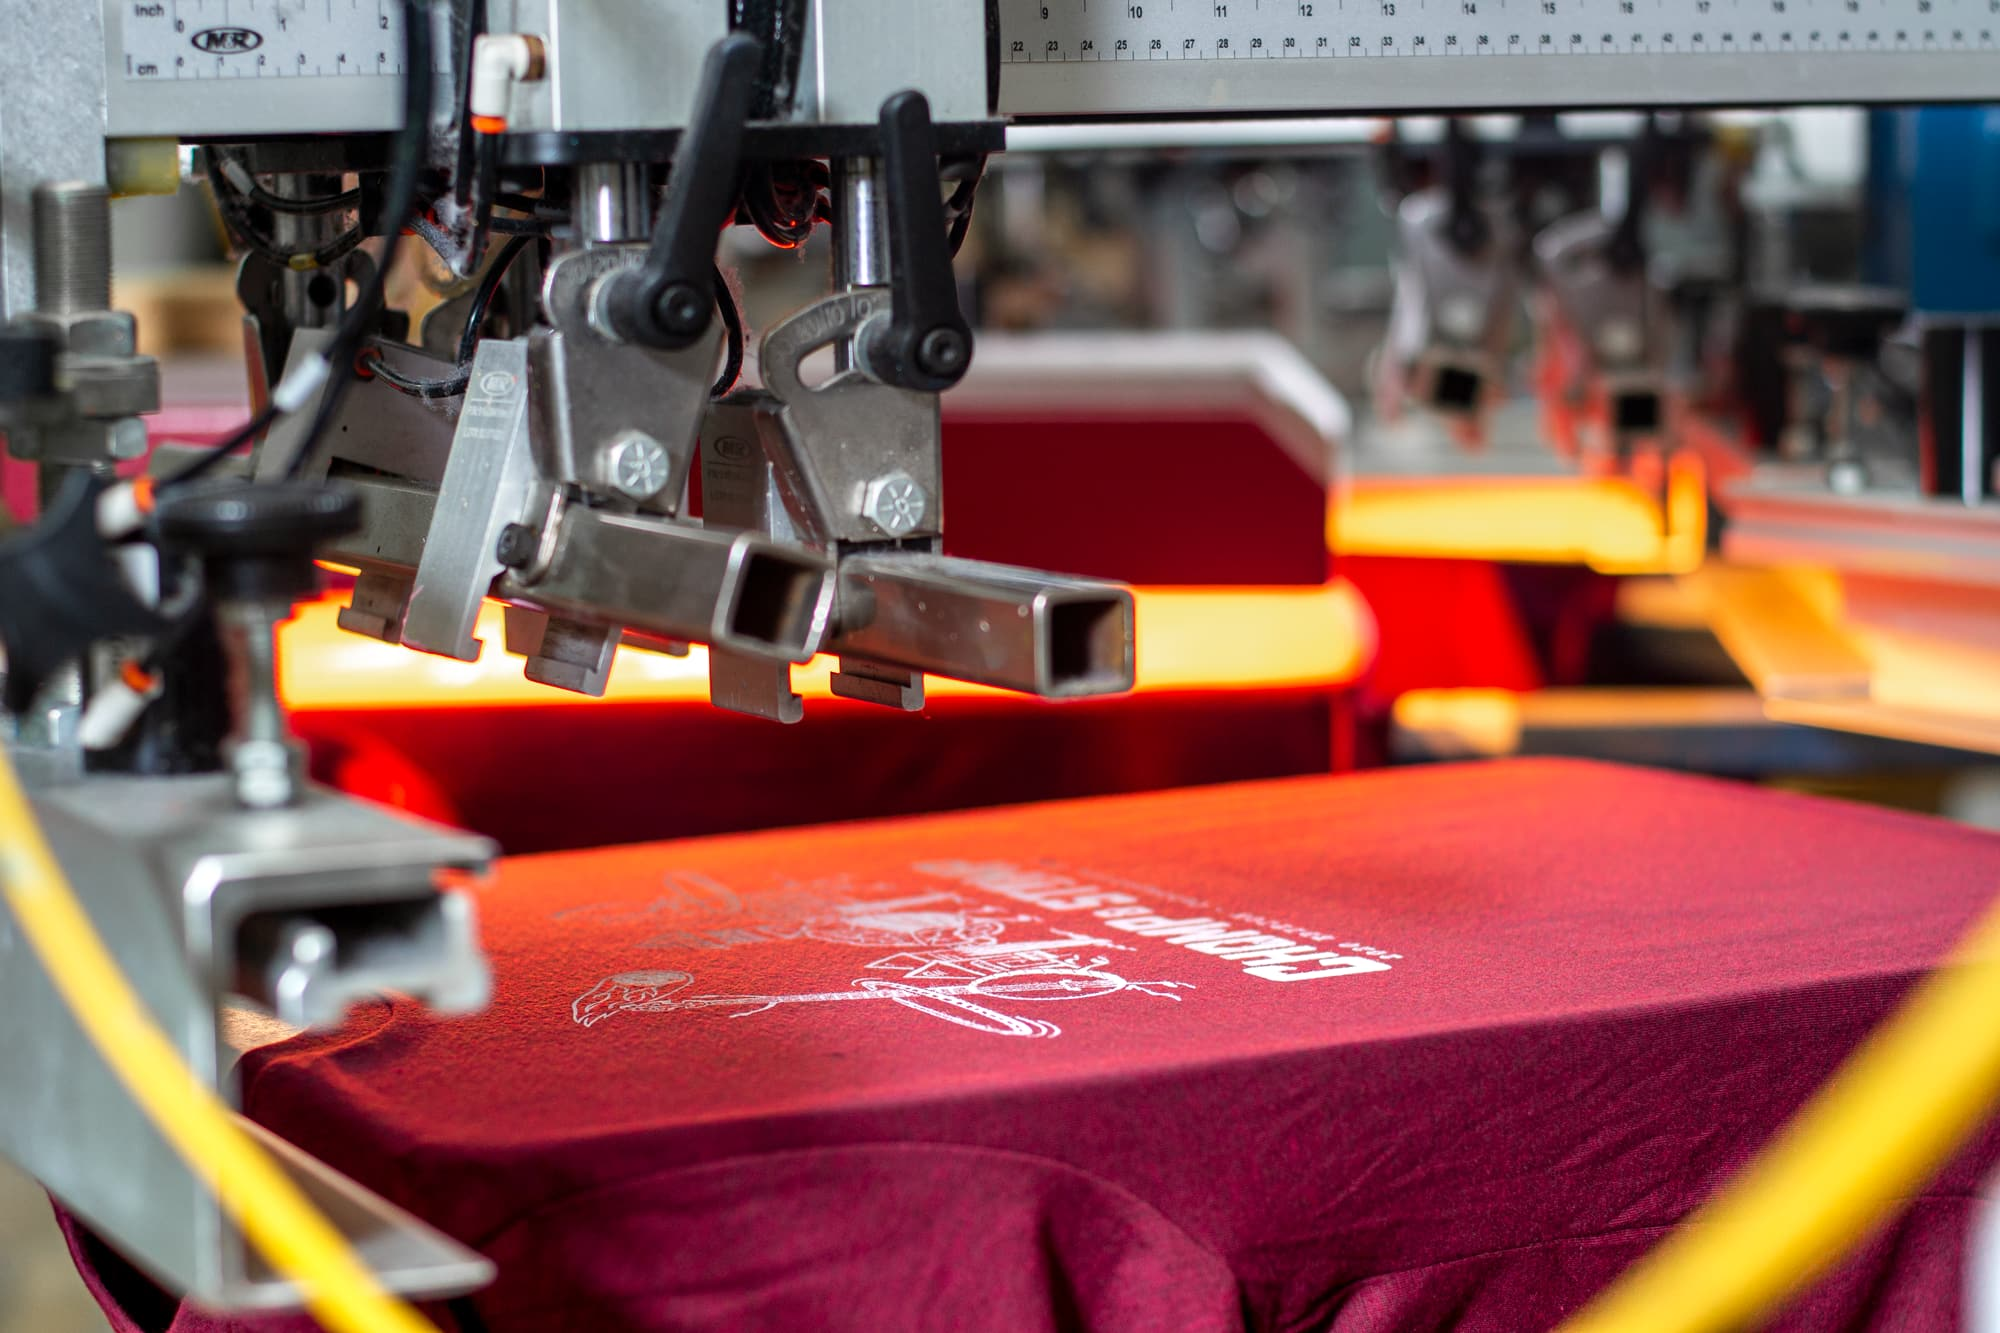 Another look behind the scenes at the Chomp and Stomp t-shirts being printed.